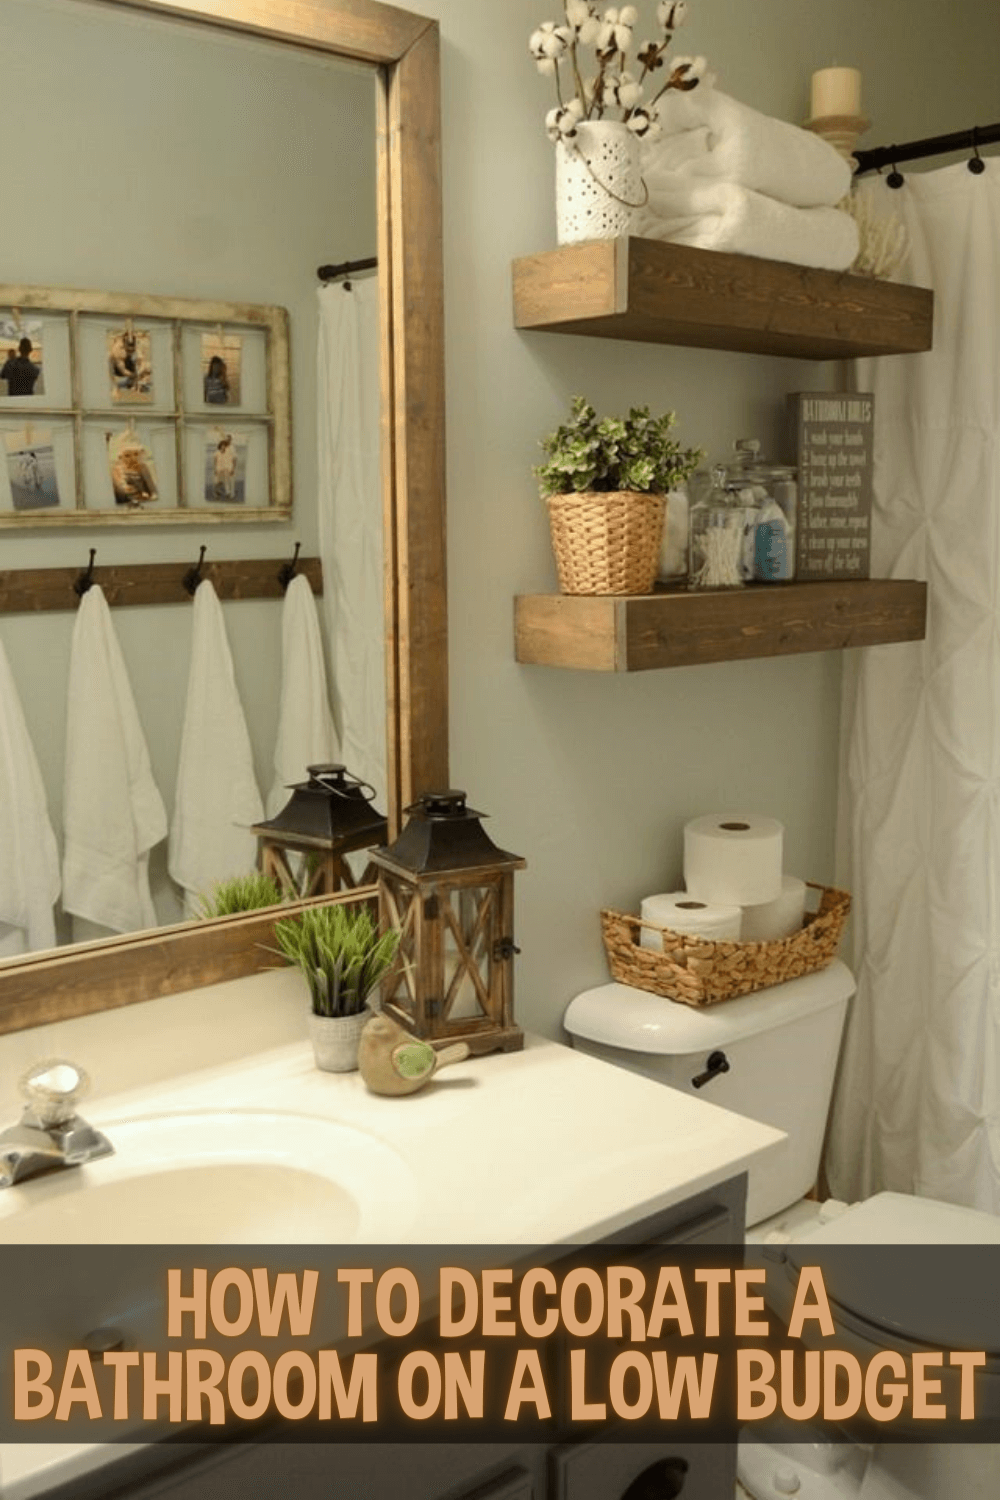 HOW TO DECORATE A BATHROOM ON A LOW BUDGET